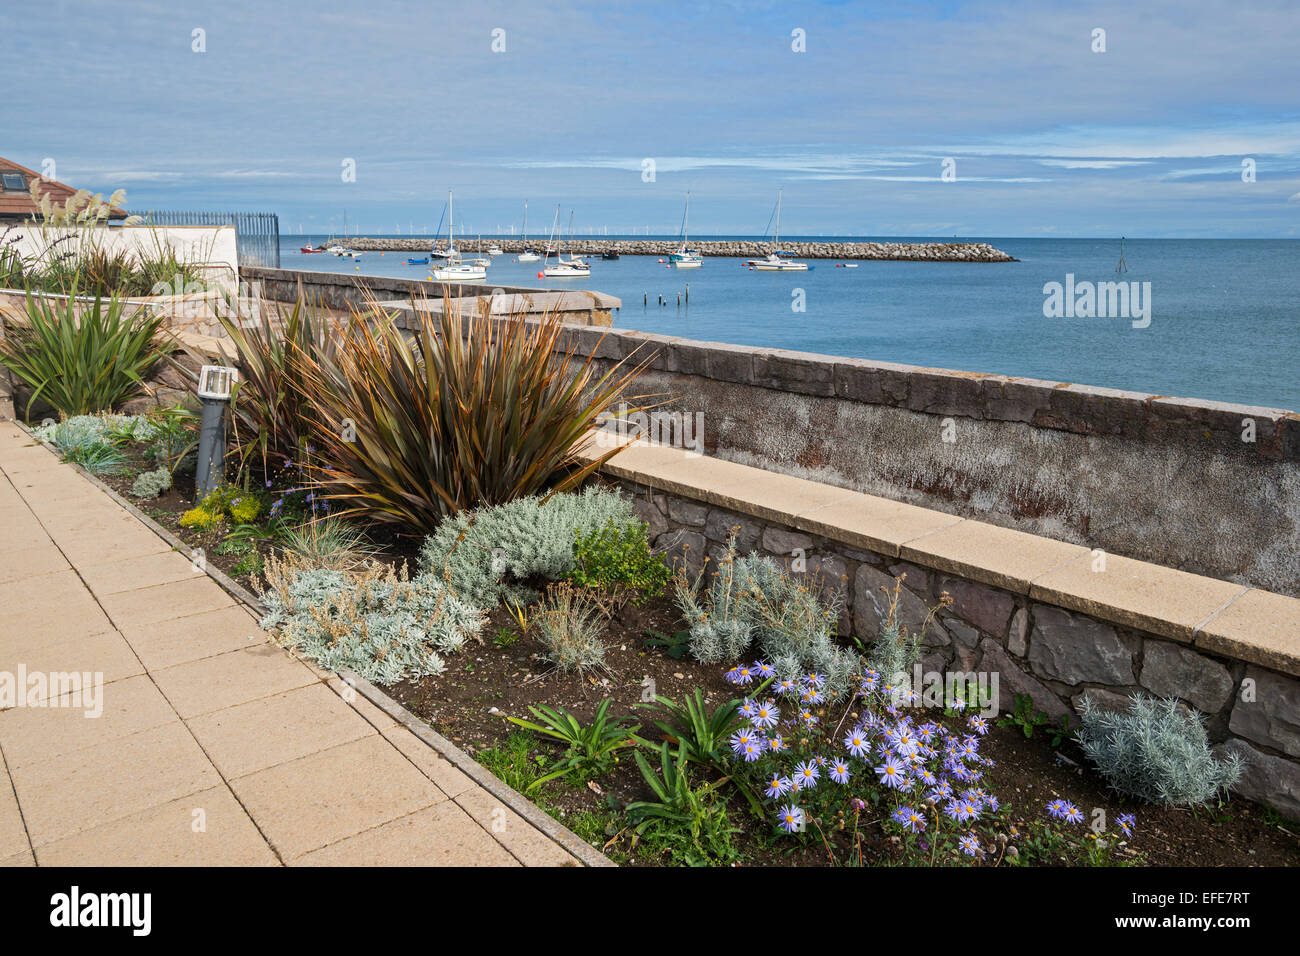 Rhos; on; sea; Colwyn; Bay; seafront; beach; UK; North; Wales - Stock Image